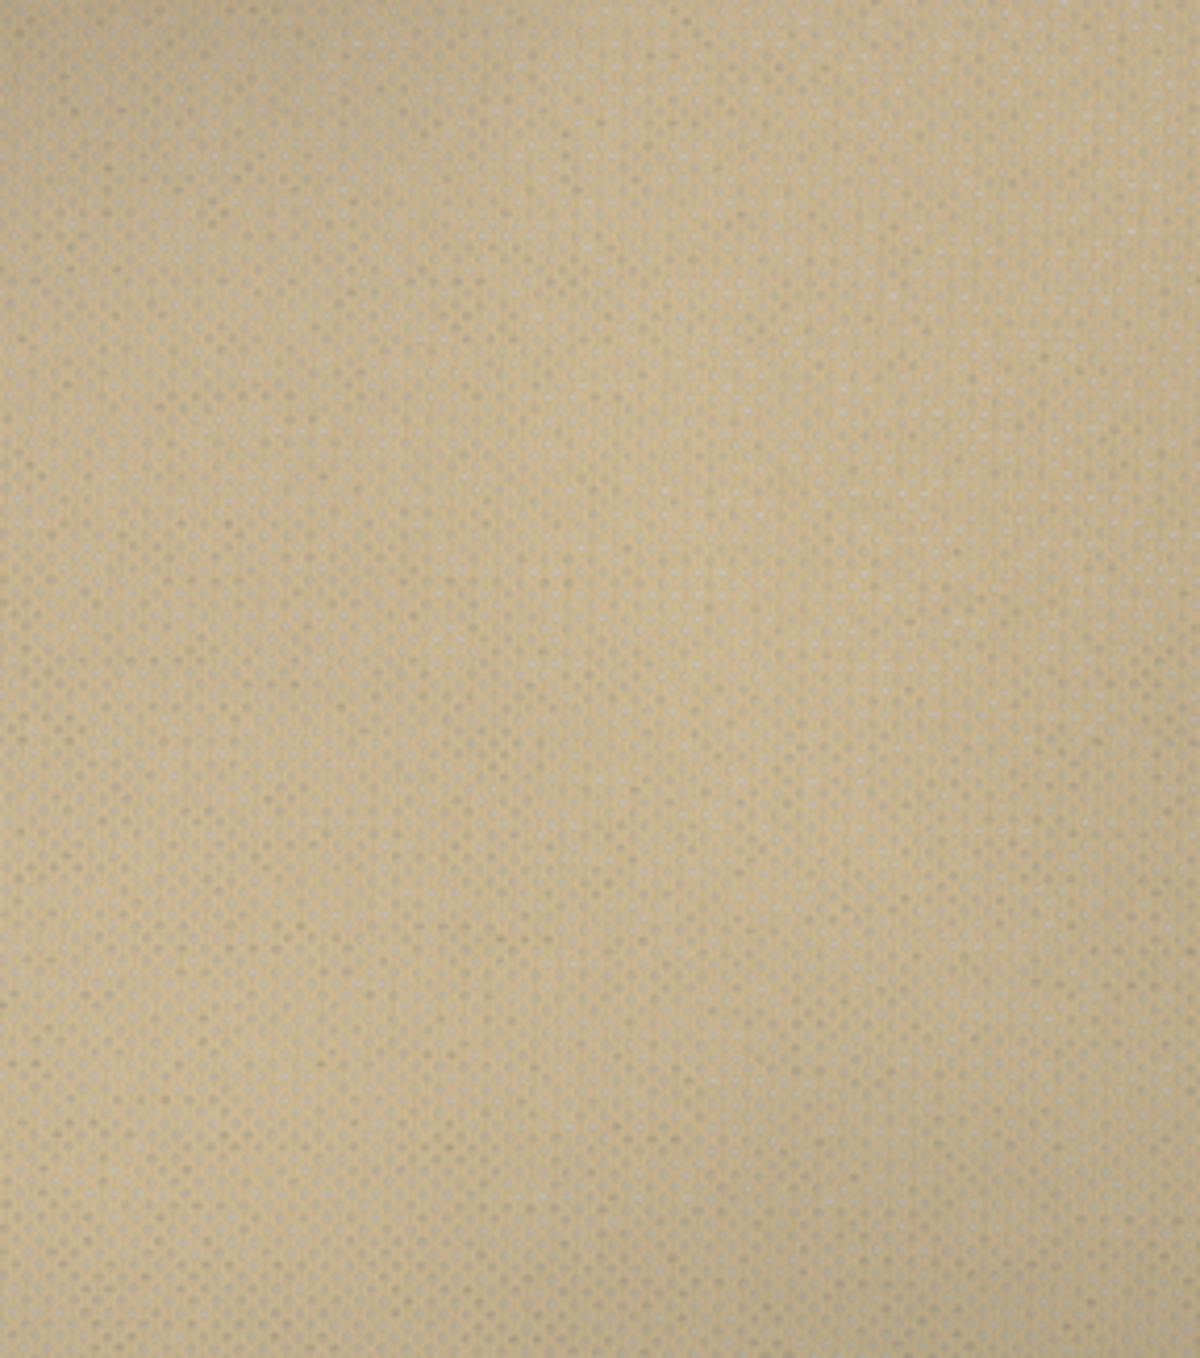 Home Decor 8\u0022x8\u0022 Fabric Swatch-Upholstery Fabric Eaton Square Brighton Dew